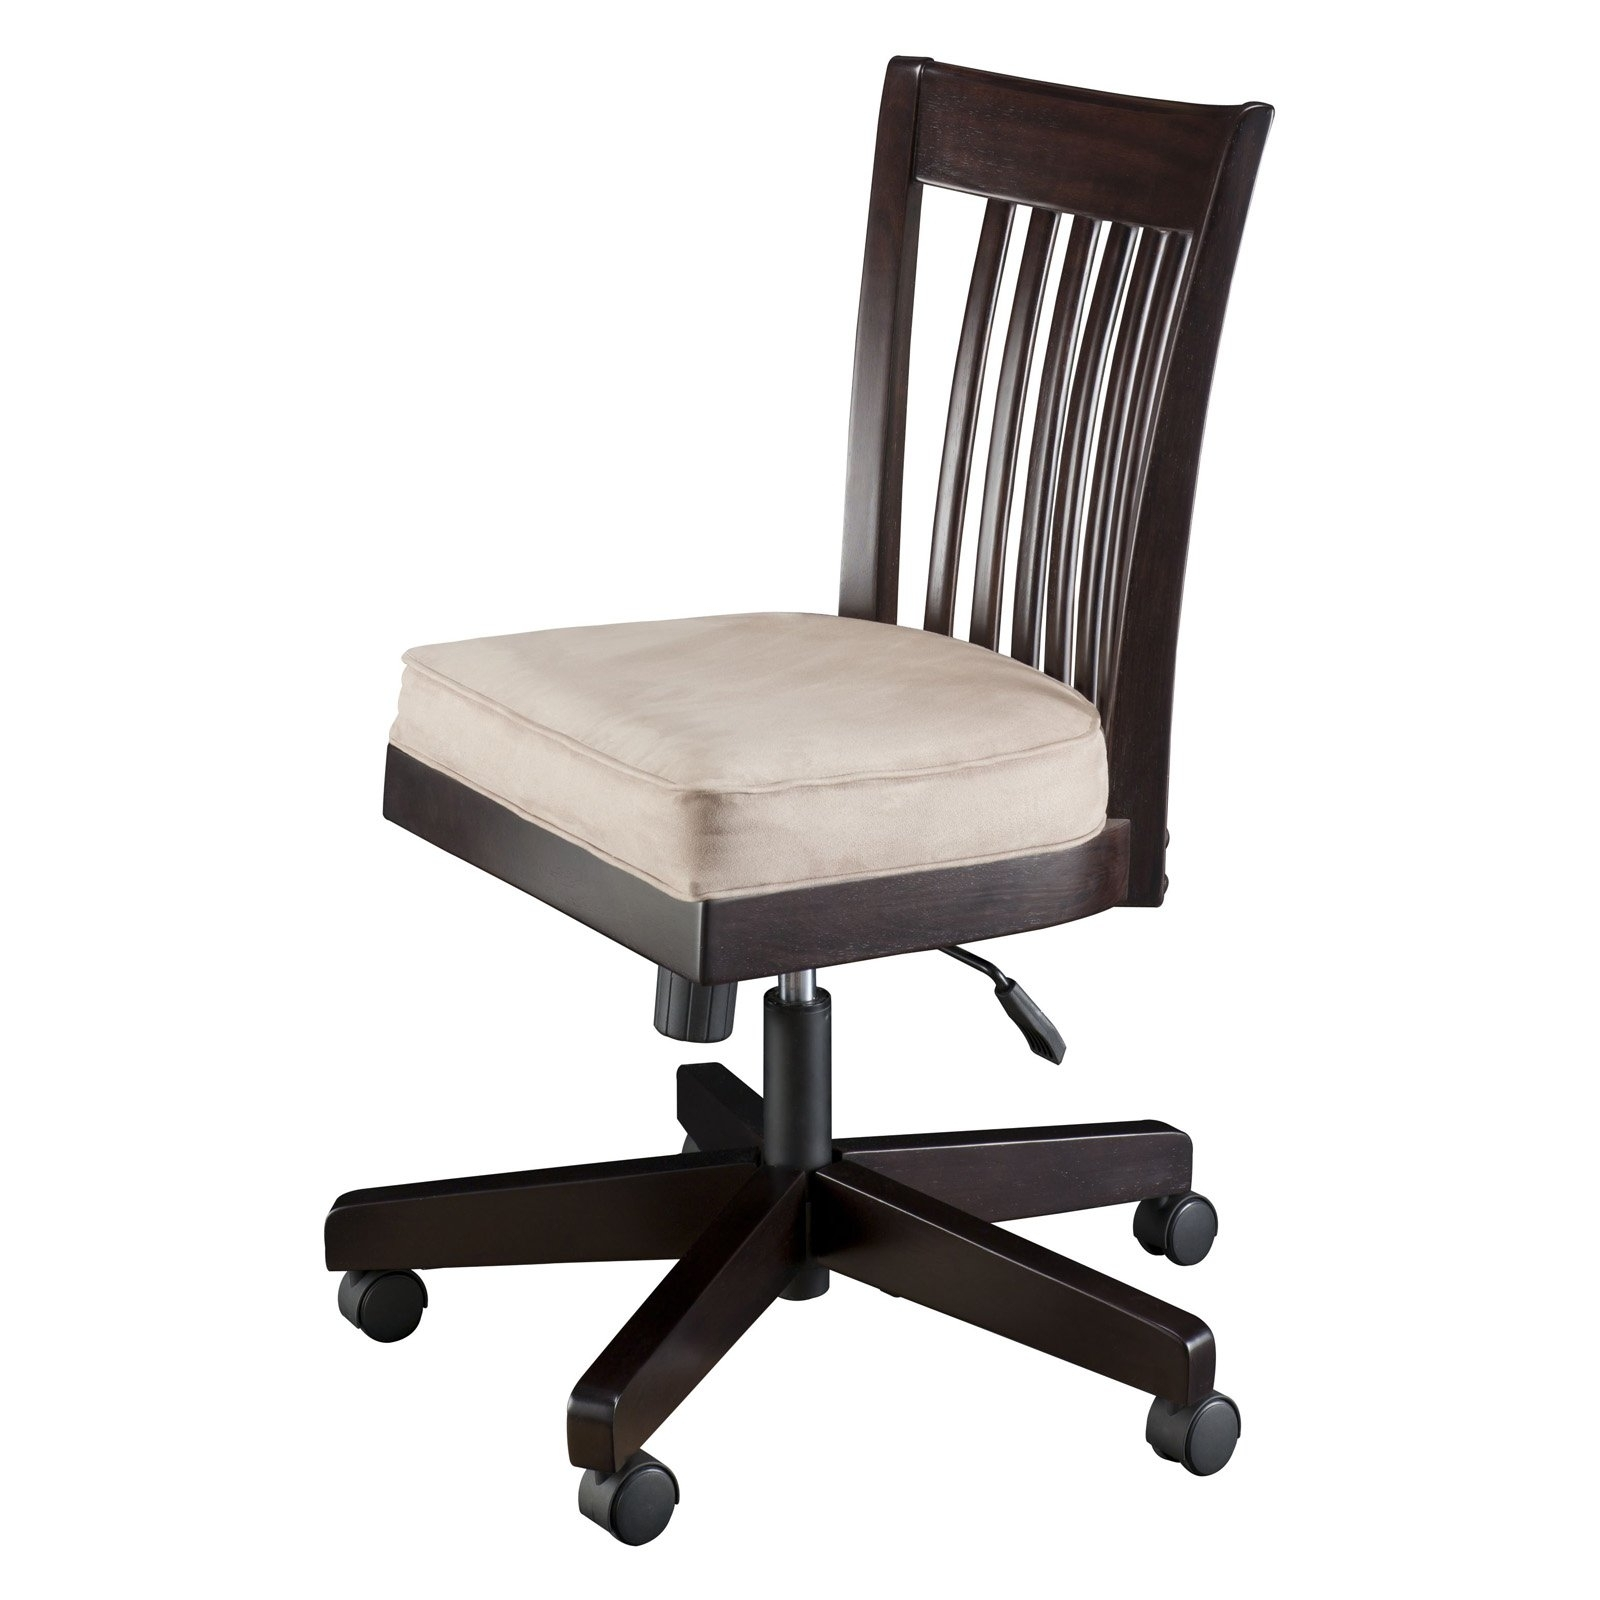 Preferred Executive Office Chairs Without Arms Intended For Furniture (View 18 of 20)